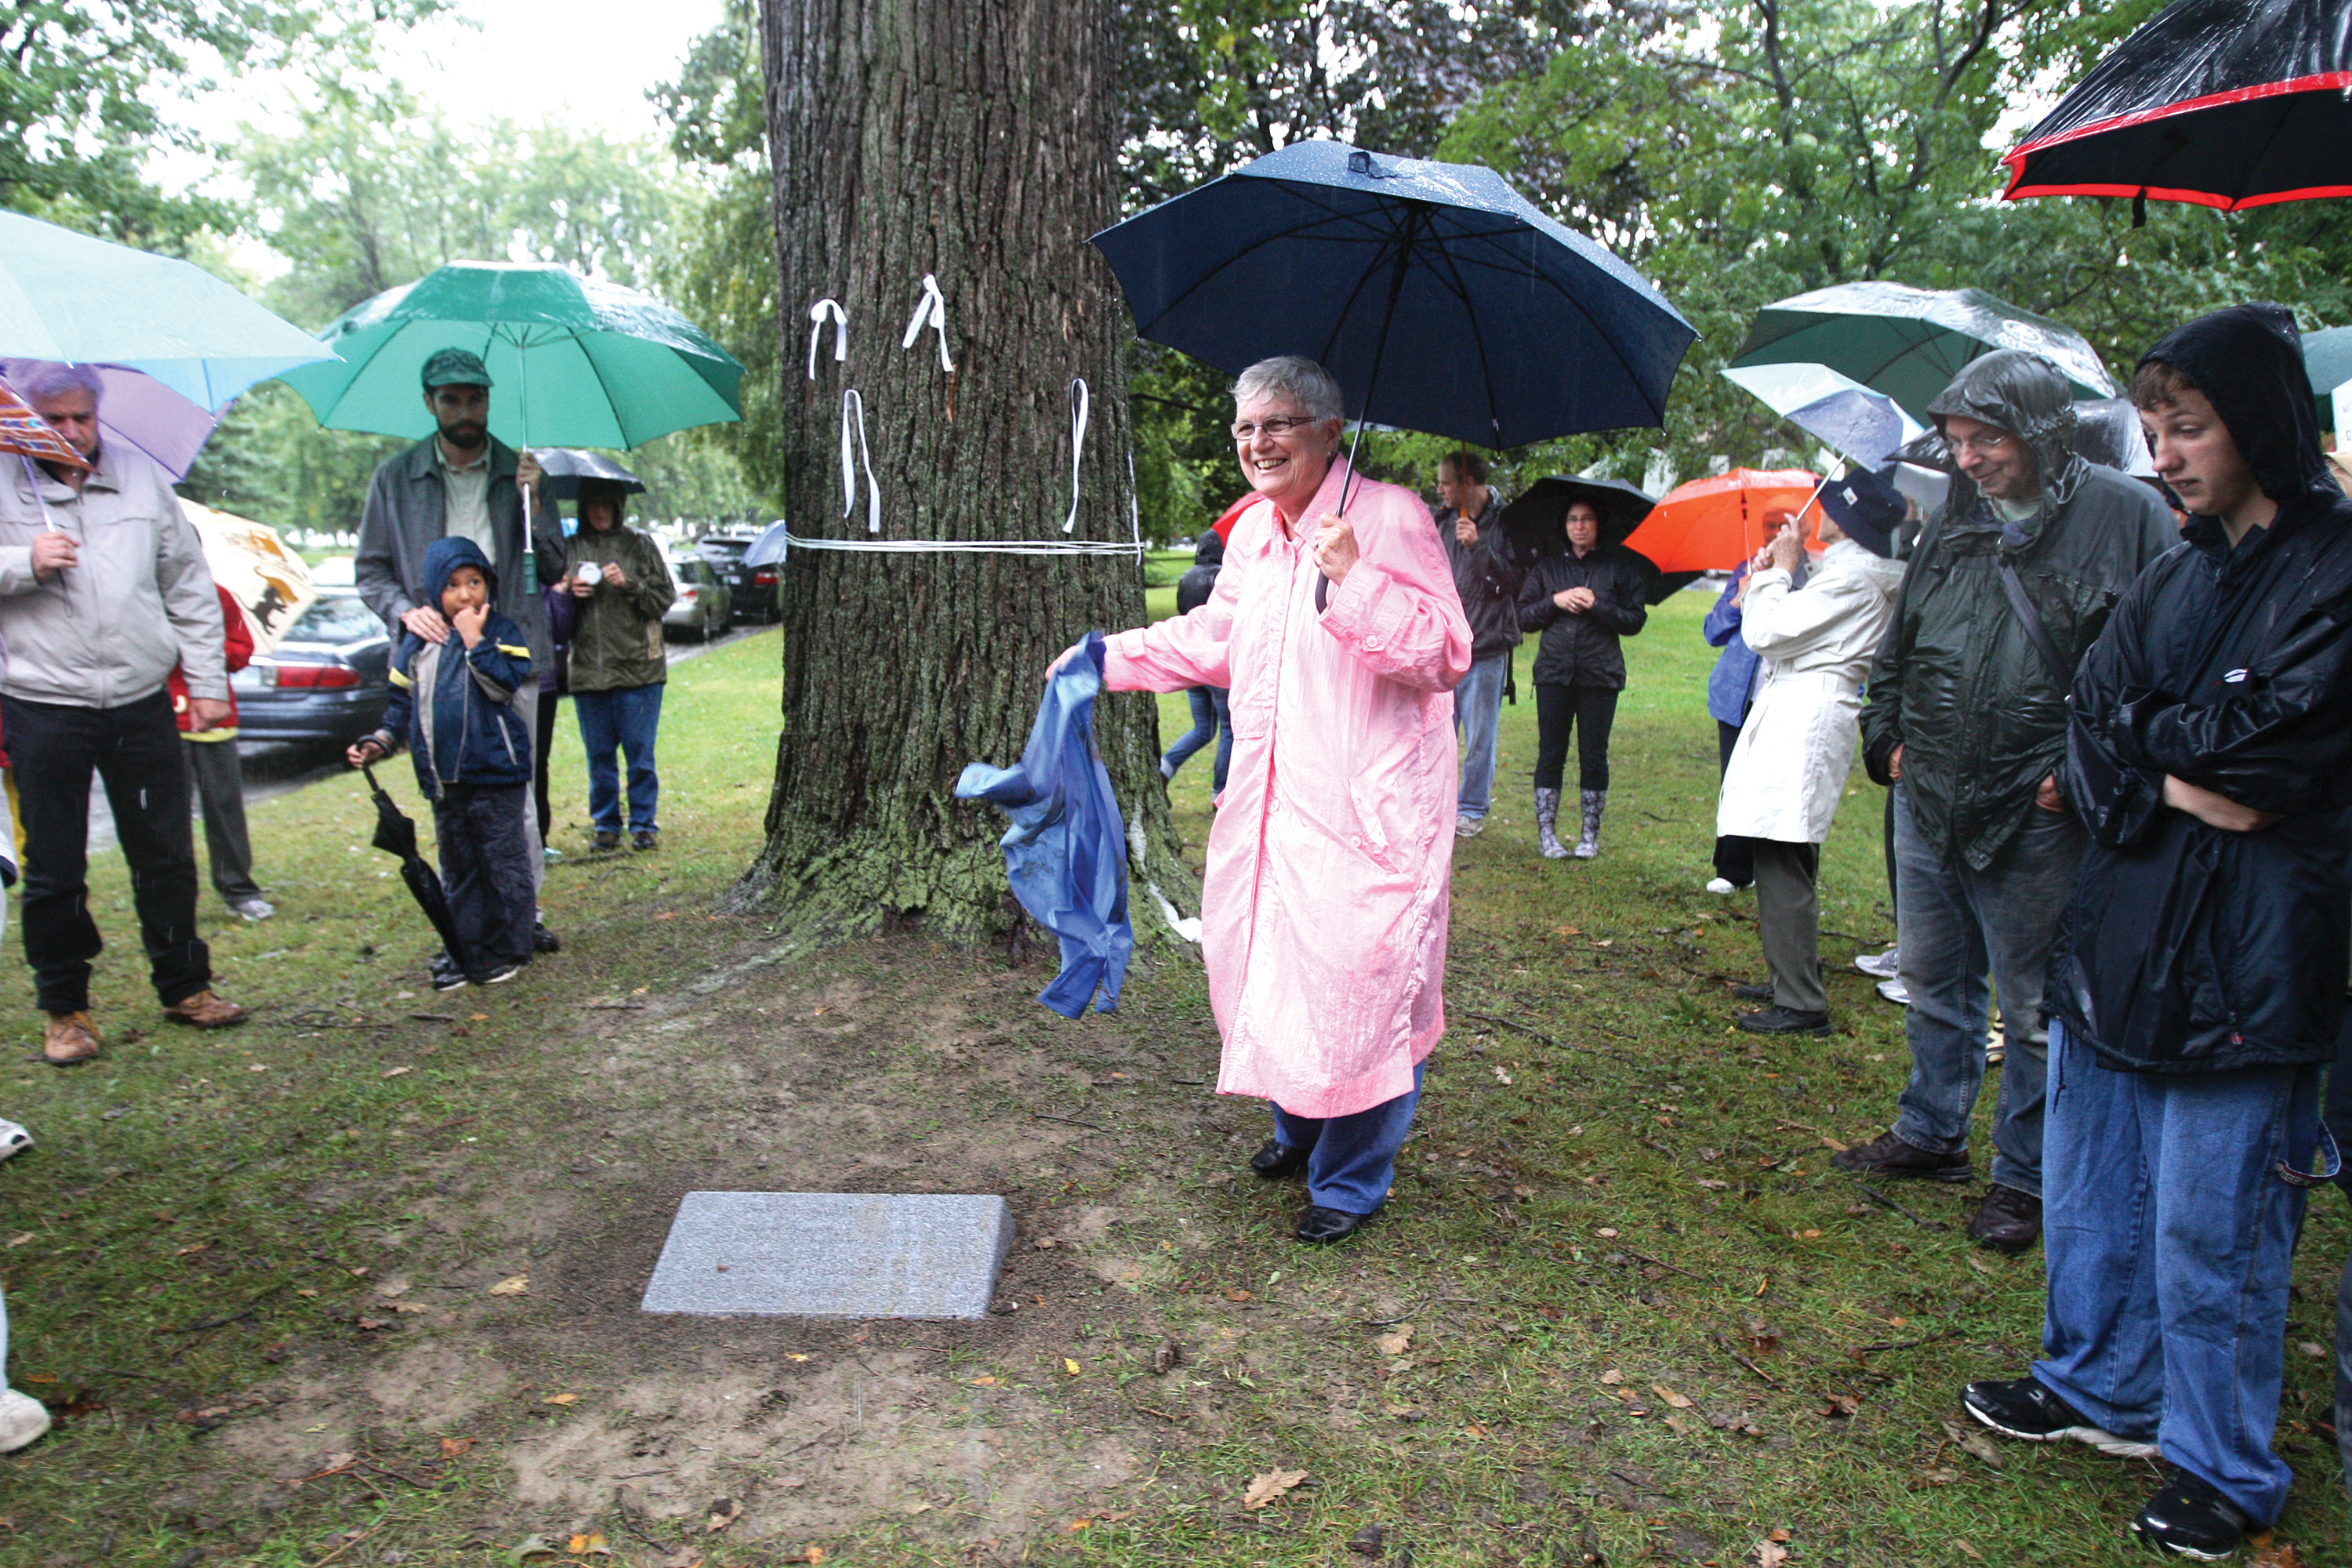 "Sister Pauline Lally of the Sisters of Providence of St. Vincent de Paul unveils a message carved in stone beneath a 100-year-old oak tree at the official launch of PeaceQuest last year at the City Park in Kingston, Ontario, on September 21, the United Nations International Day of Peace. The inscription in each of Canada's official languages reads, ""Grieving the tragedy of war, committed to the promise of peace."" Last July, the mayor and city council of Kingston passed a proclamation declaring September 21 to be Peace Day in Kingston and this too was read at the launch. The proclamation states that ""the citizens of Kingston are all too familiar with the cost of war and cherish the value of living in peace,"" and encourages ""all citizens to do something positive to promote peaceful living in our community and our world."" Visit peacequest.ca to learn more. All photos for this article credited to Lars Hagberg/PeaceQuest."